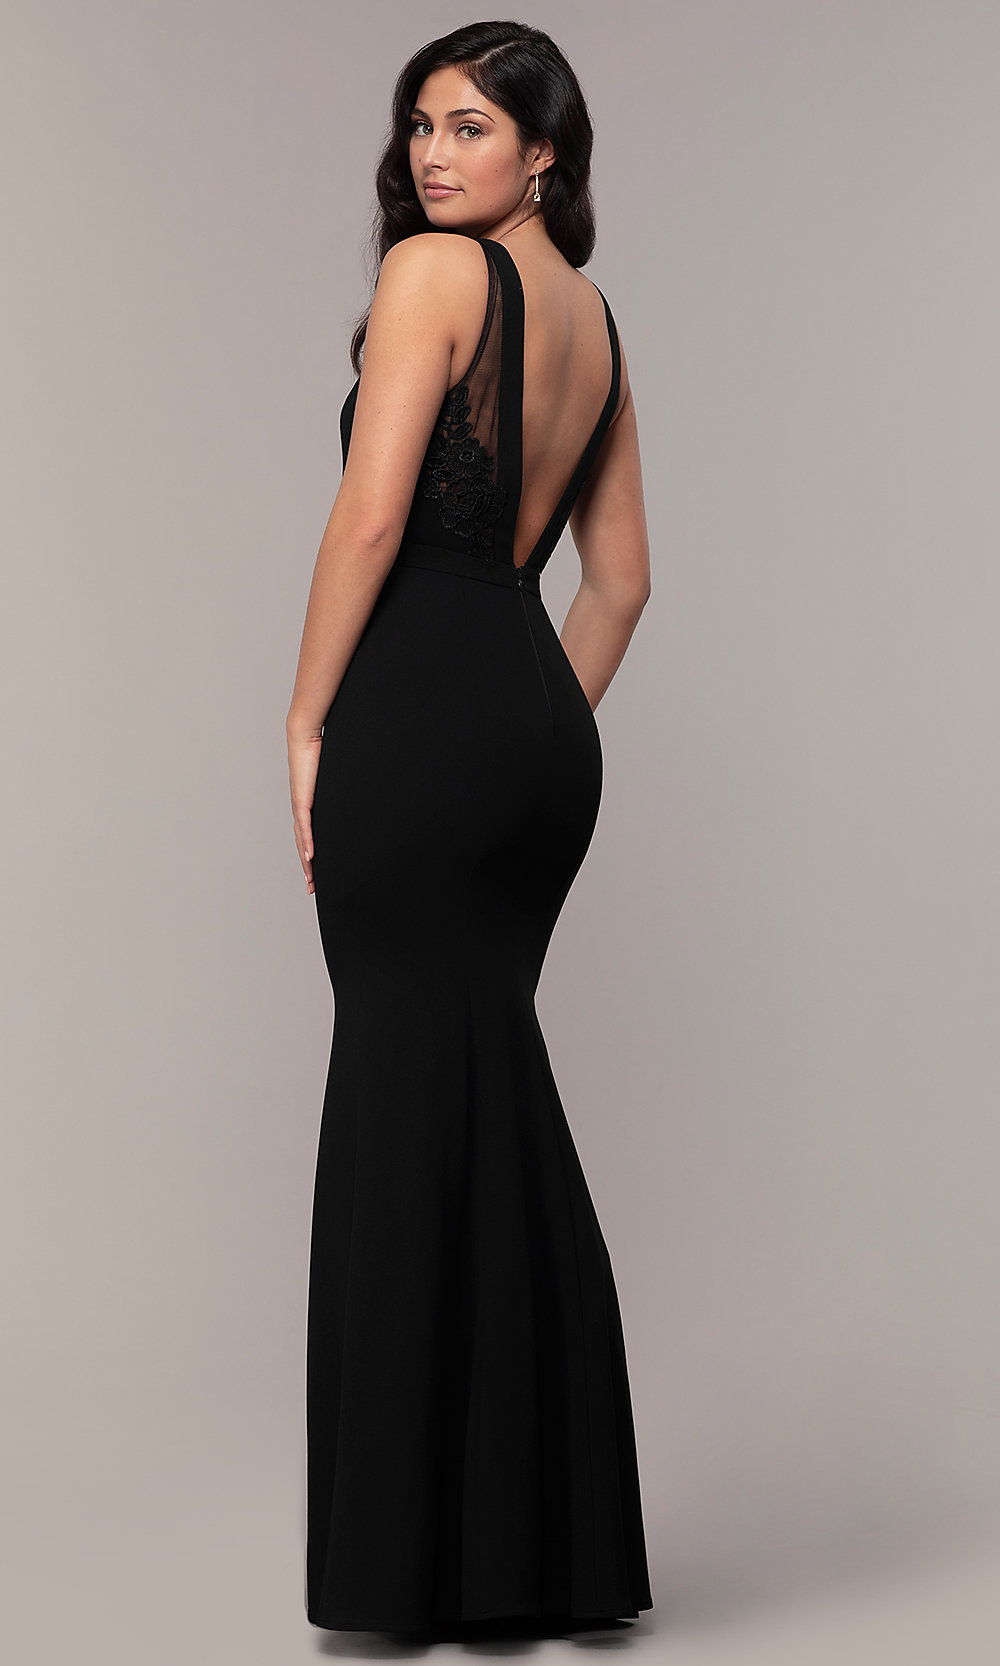 meticulous dyeing processes great discount online shop High-Neck Long Mermaid Formal Dress by Simply